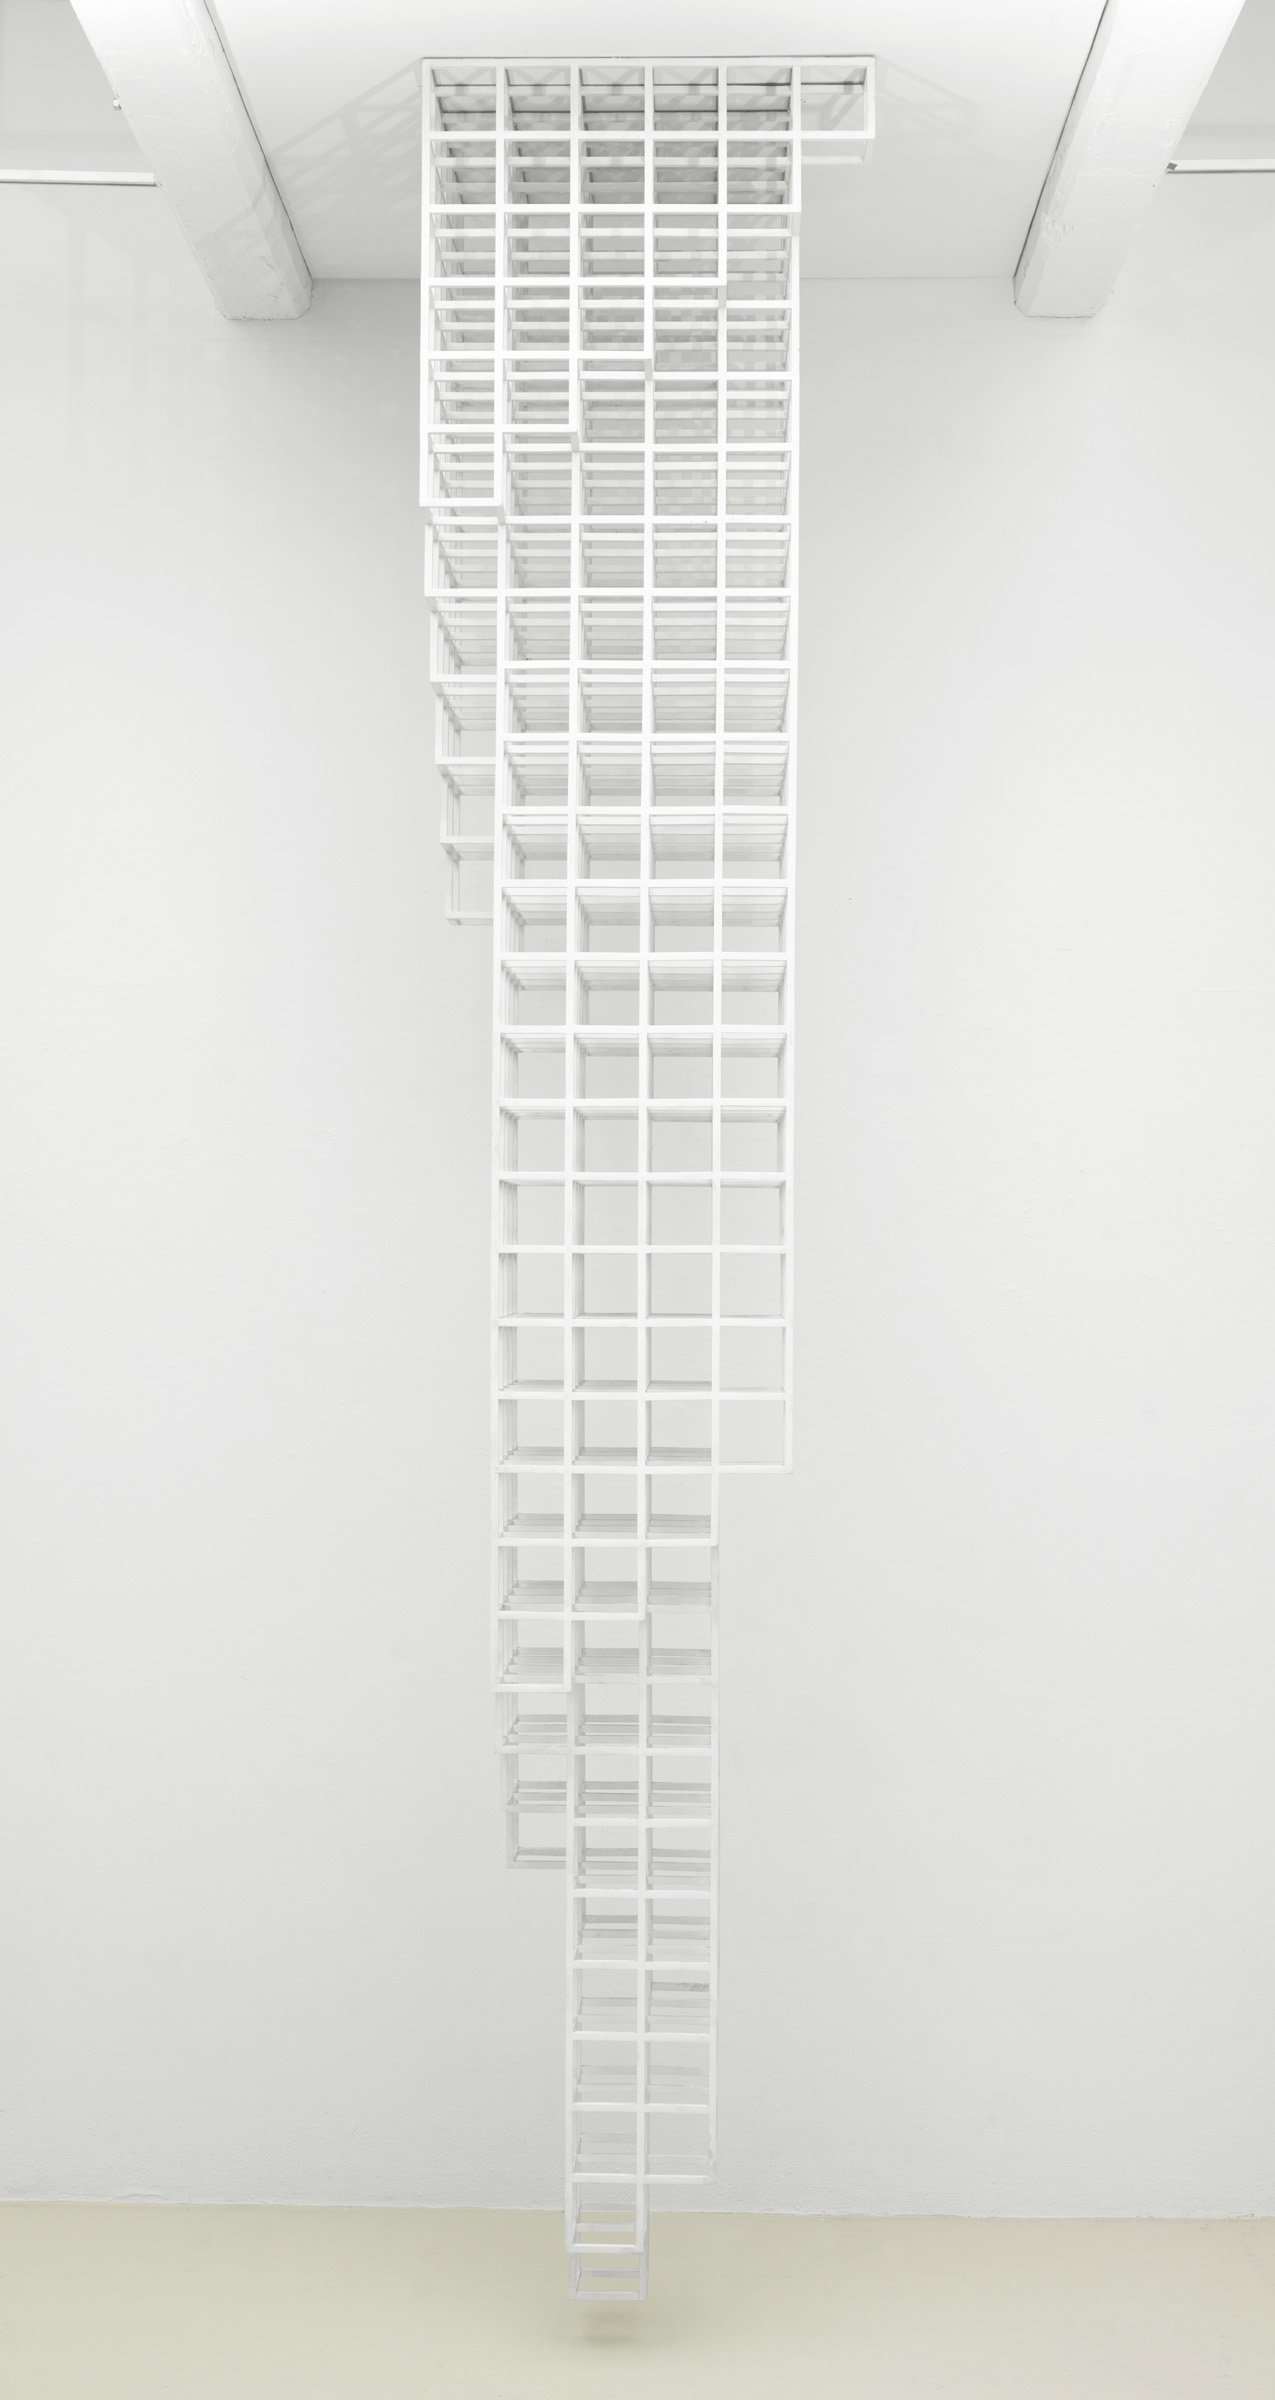 ", 1987. Wood painted white, 12&apos; 3-3/4"" x 2&apos; 5"" x 2&apos; 5"" (375.3 cm x 73.7 cm x 73.7 cm)."